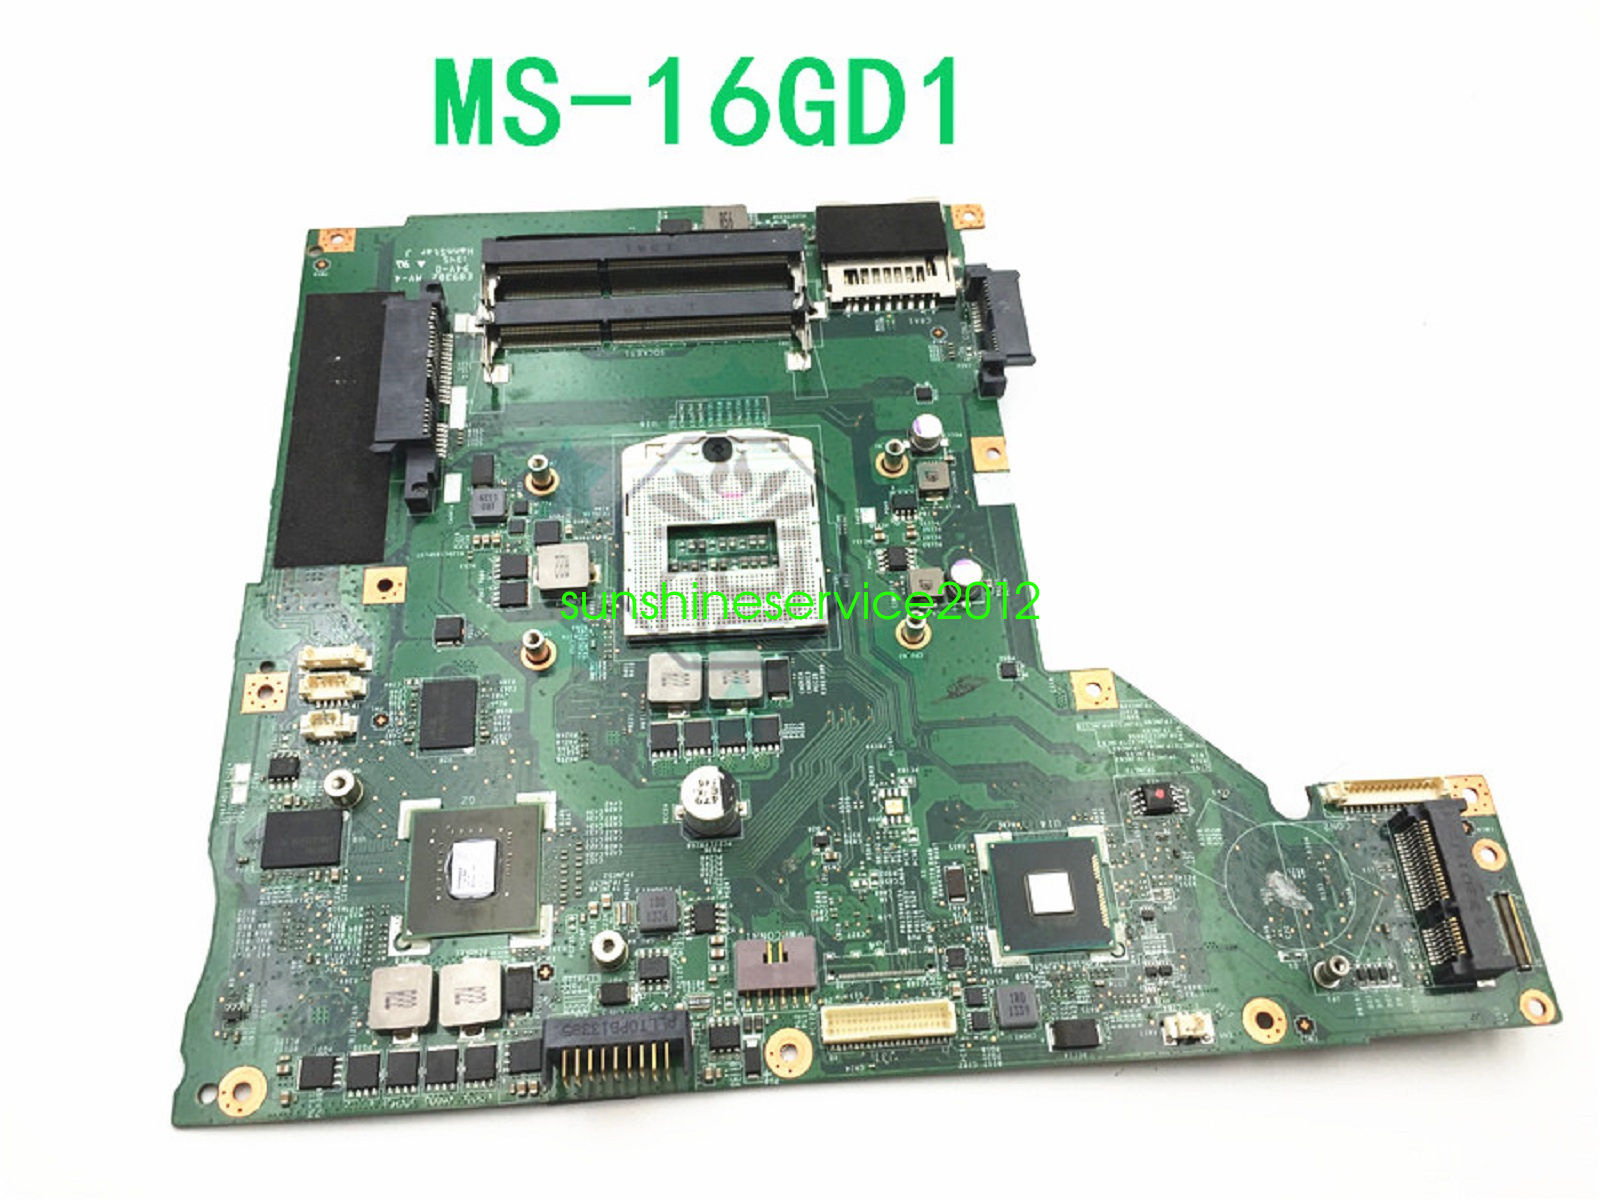 MSI CX61 CX60 Laptop Intel Motherboard MS-16GD1 VER: 1.1